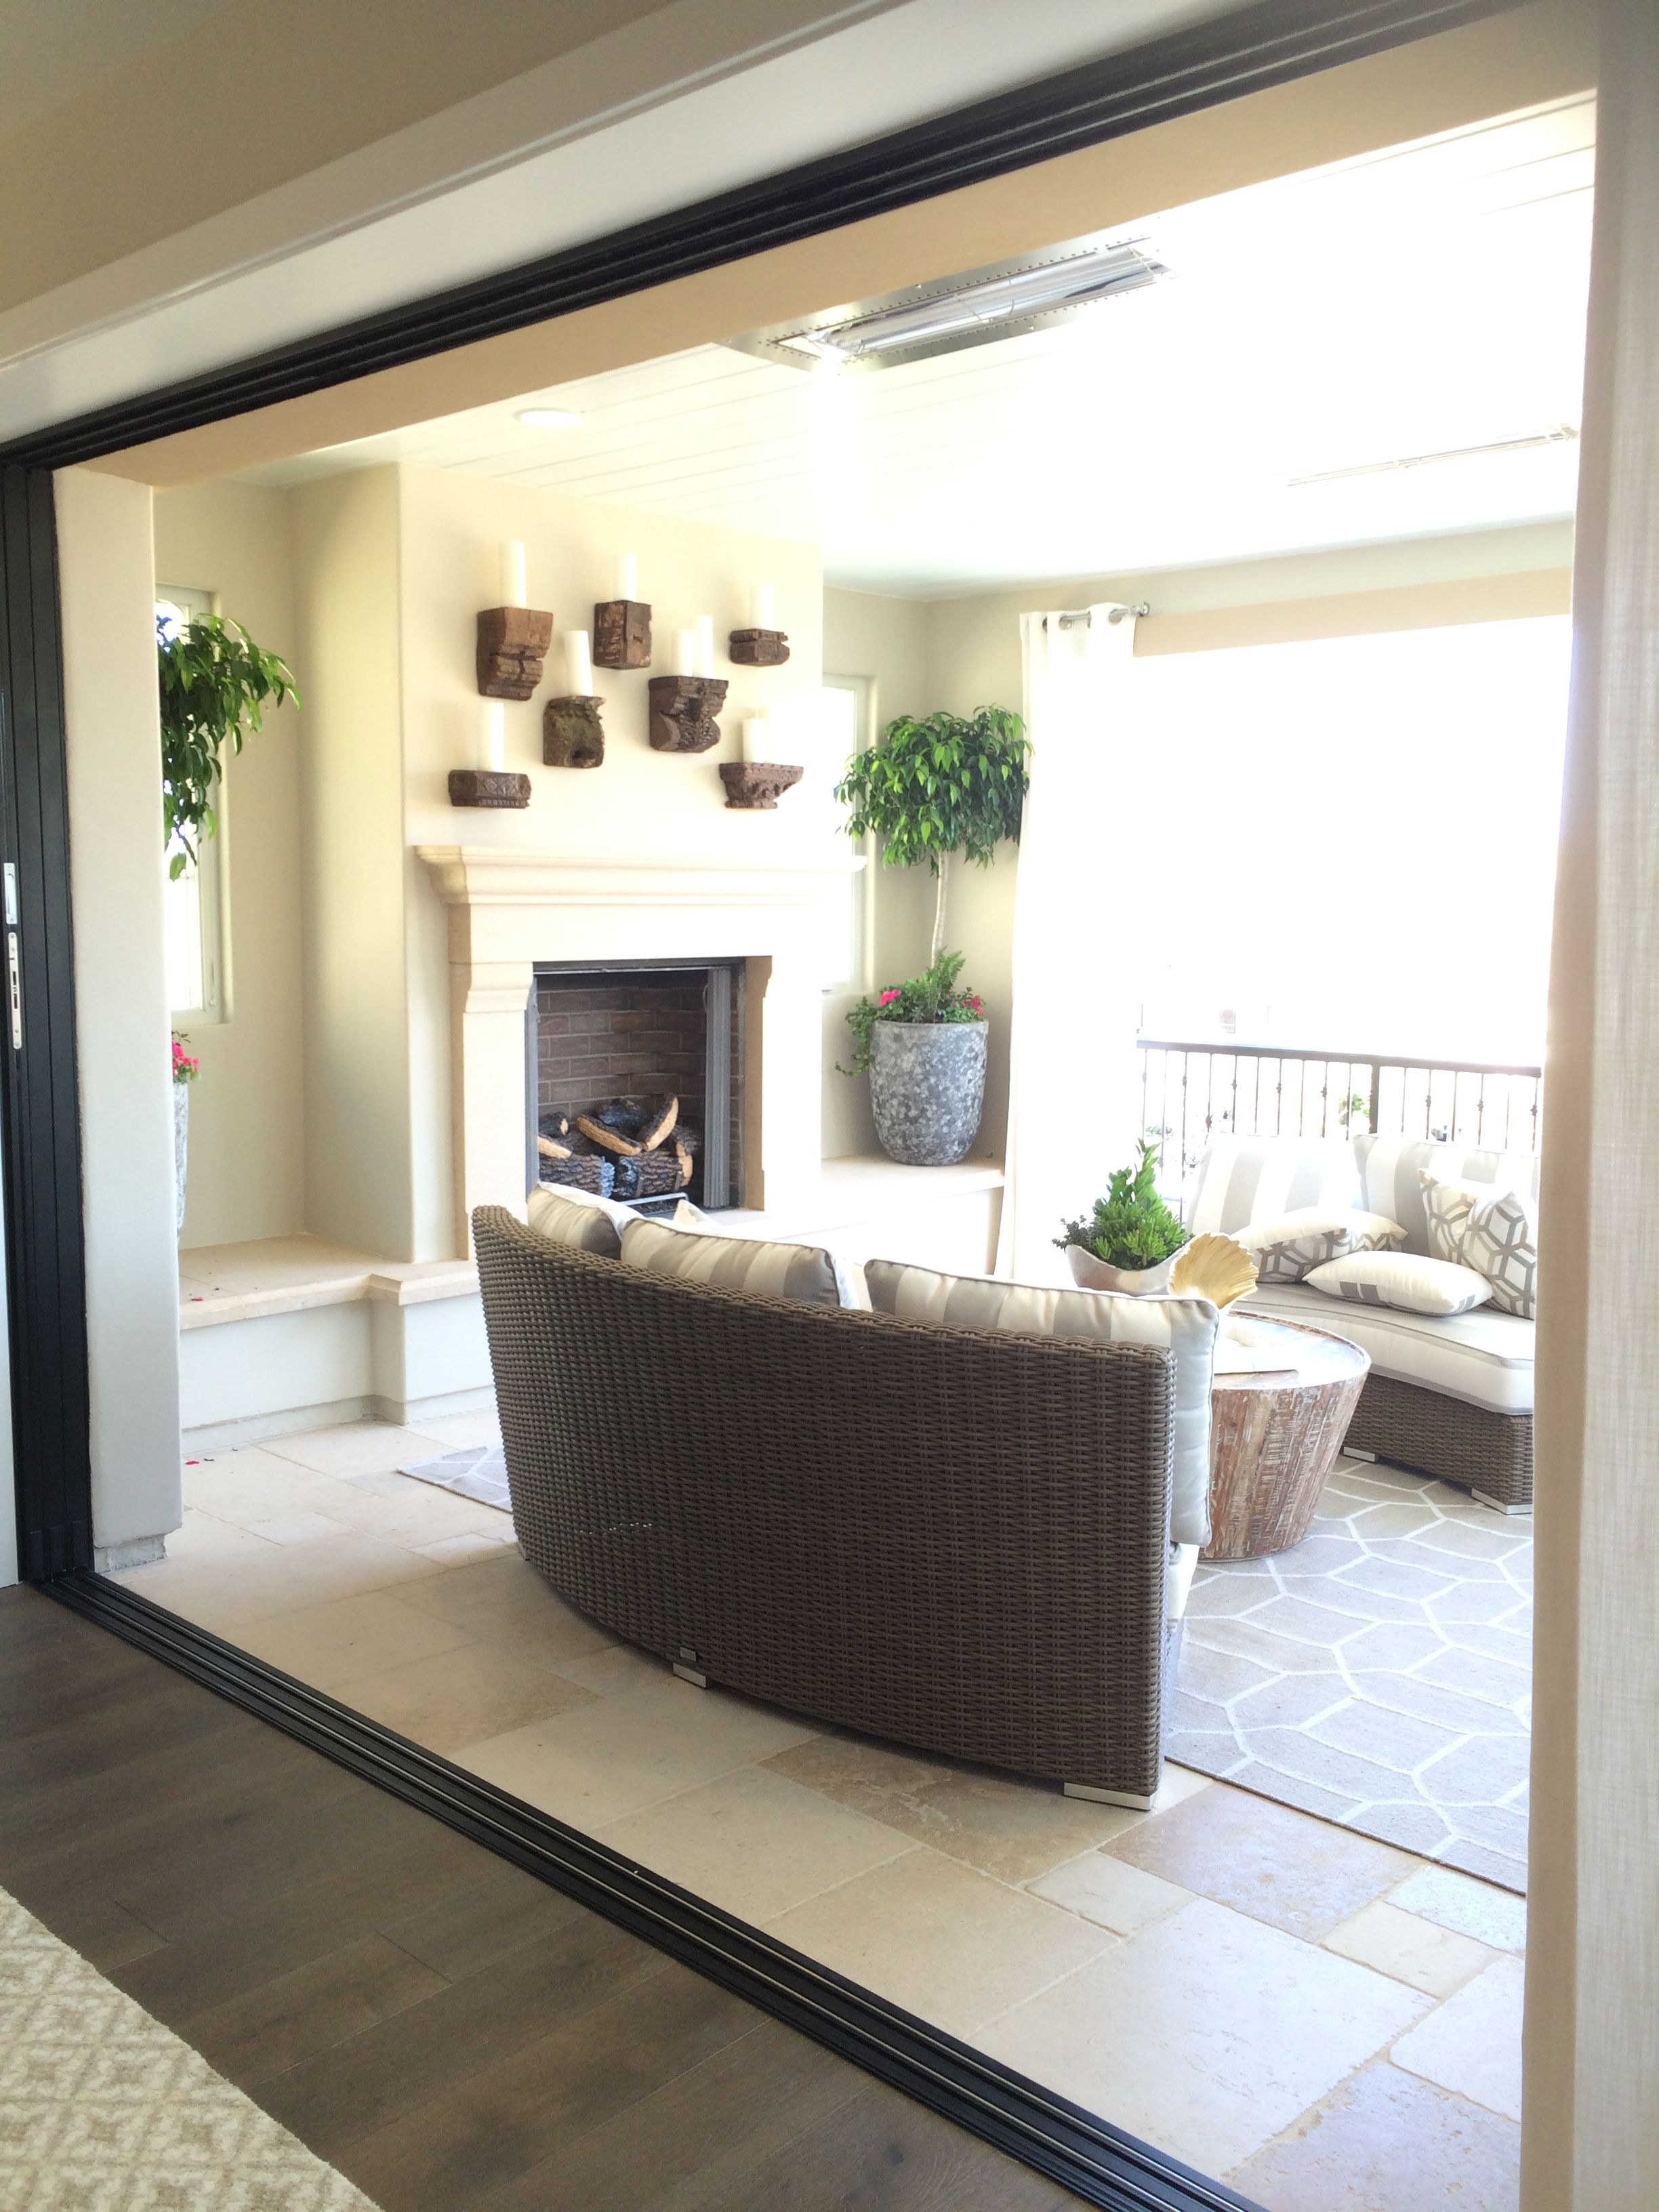 Patio Room Right Of Master Bedroom Can T Beat This Patio Room California Room Sunroom Remodel